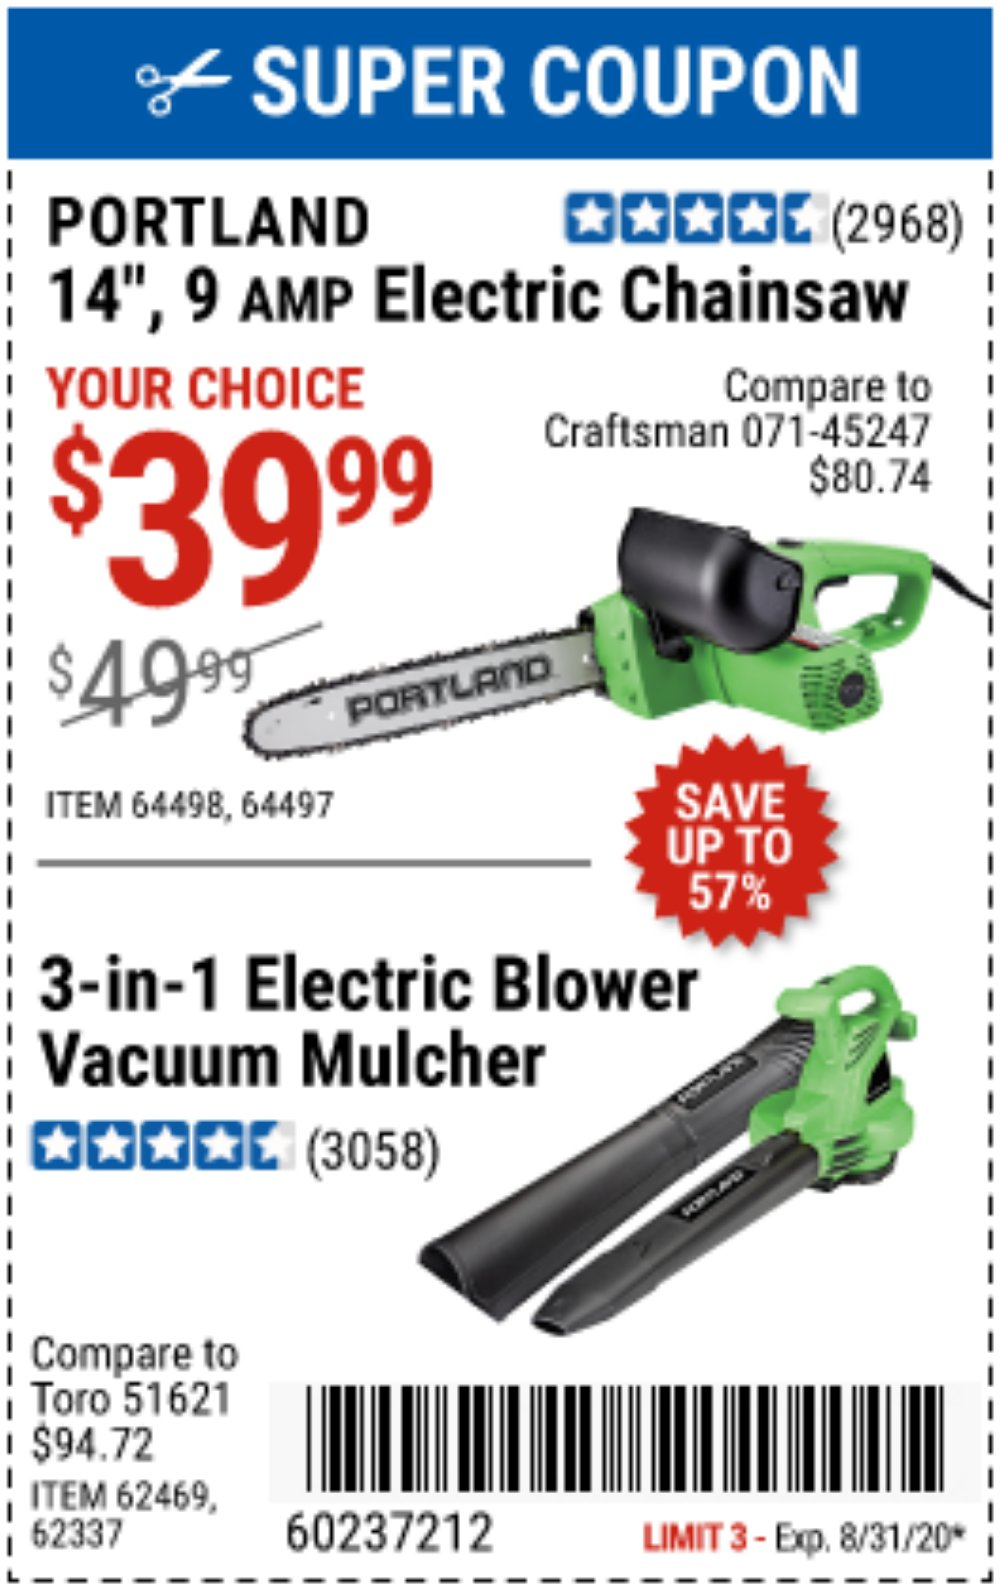 Harbor Freight Coupon, HF Coupons - 3 In 1 Electric Blower Vacuum Mulcher